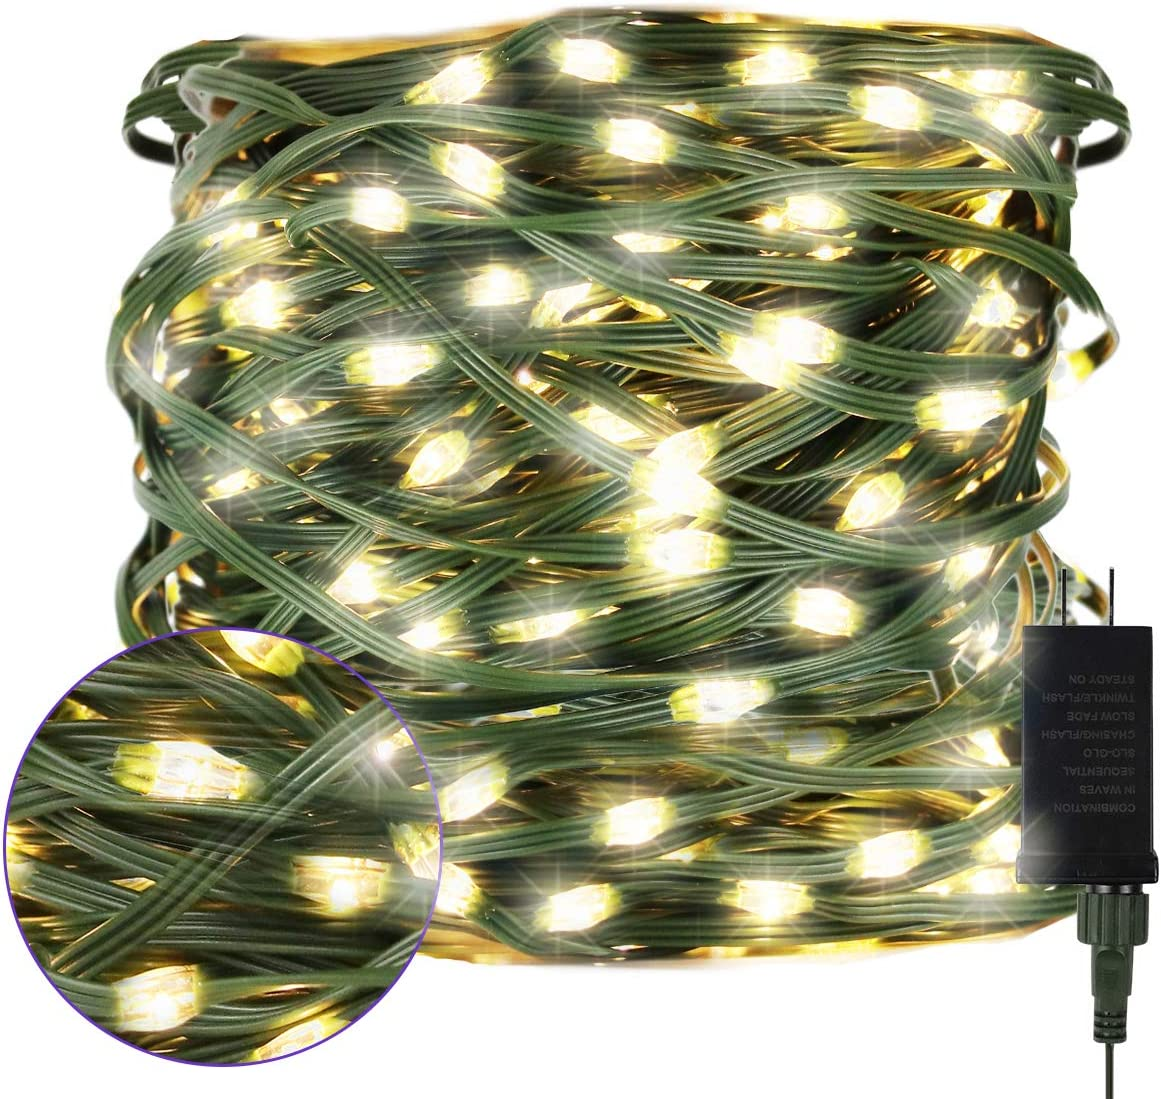 Juhefa String Lights, Plug-in Green Wire 108FT 200 LED Christmas Tree String Lights,IP65 Waterproof & 8 Modes Fairy Lights for Garden/Patio/Indoor/Outdoor Decor (Warm White)